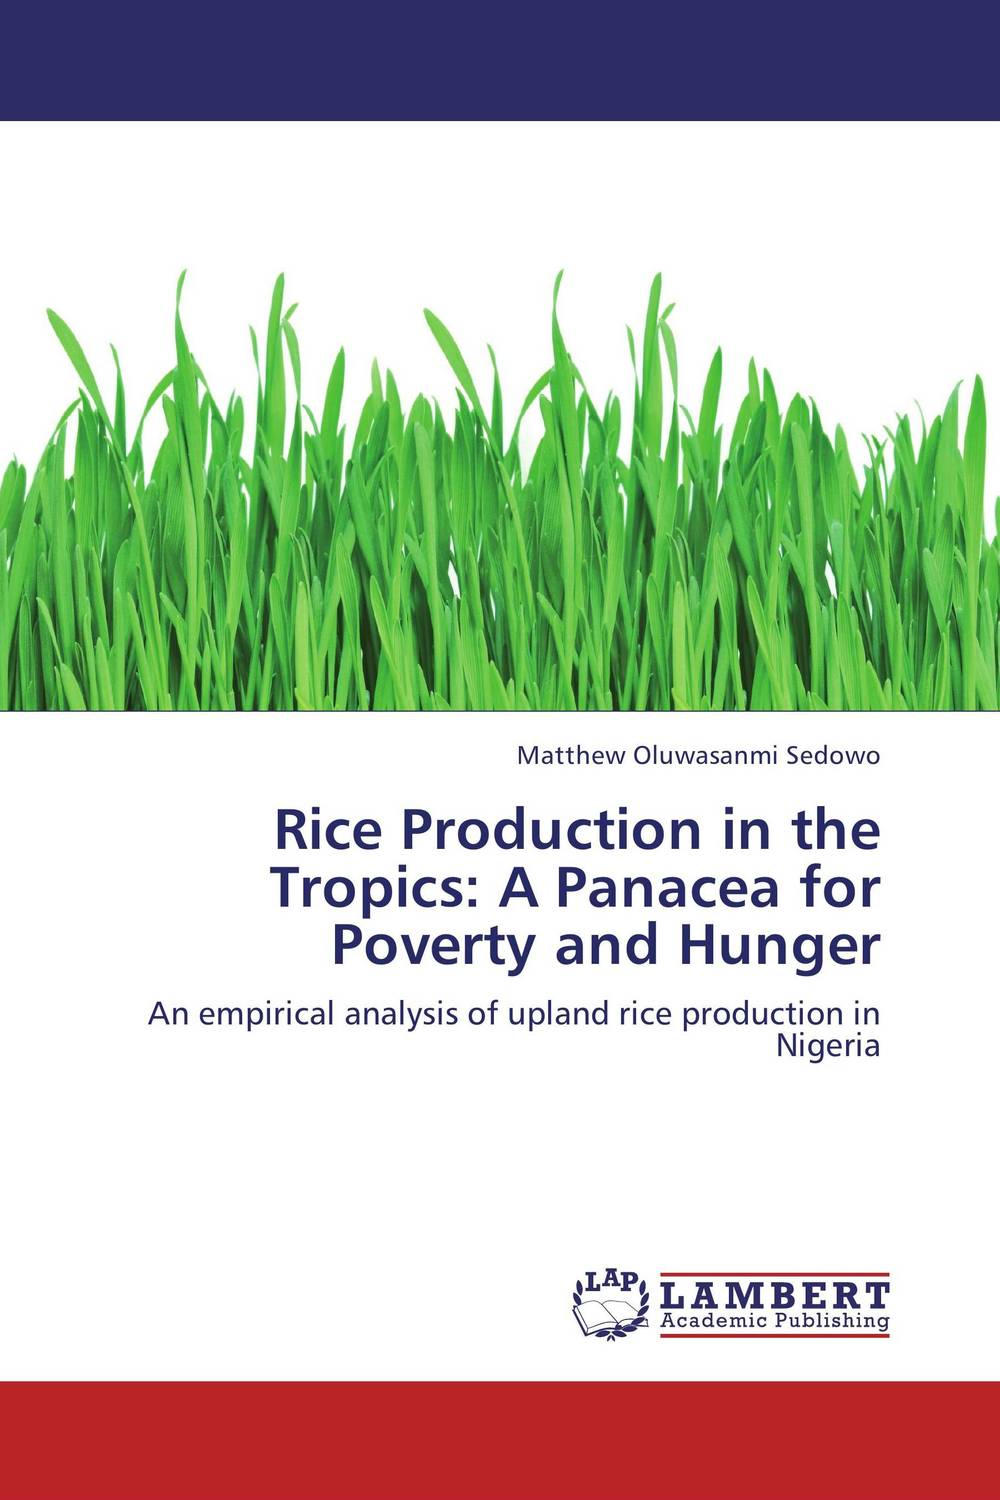 Rice Production in the Tropics: A Panacea for Poverty and Hunger matthew oluwasanmi sedowo rice production in the tropics a panacea for poverty and hunger